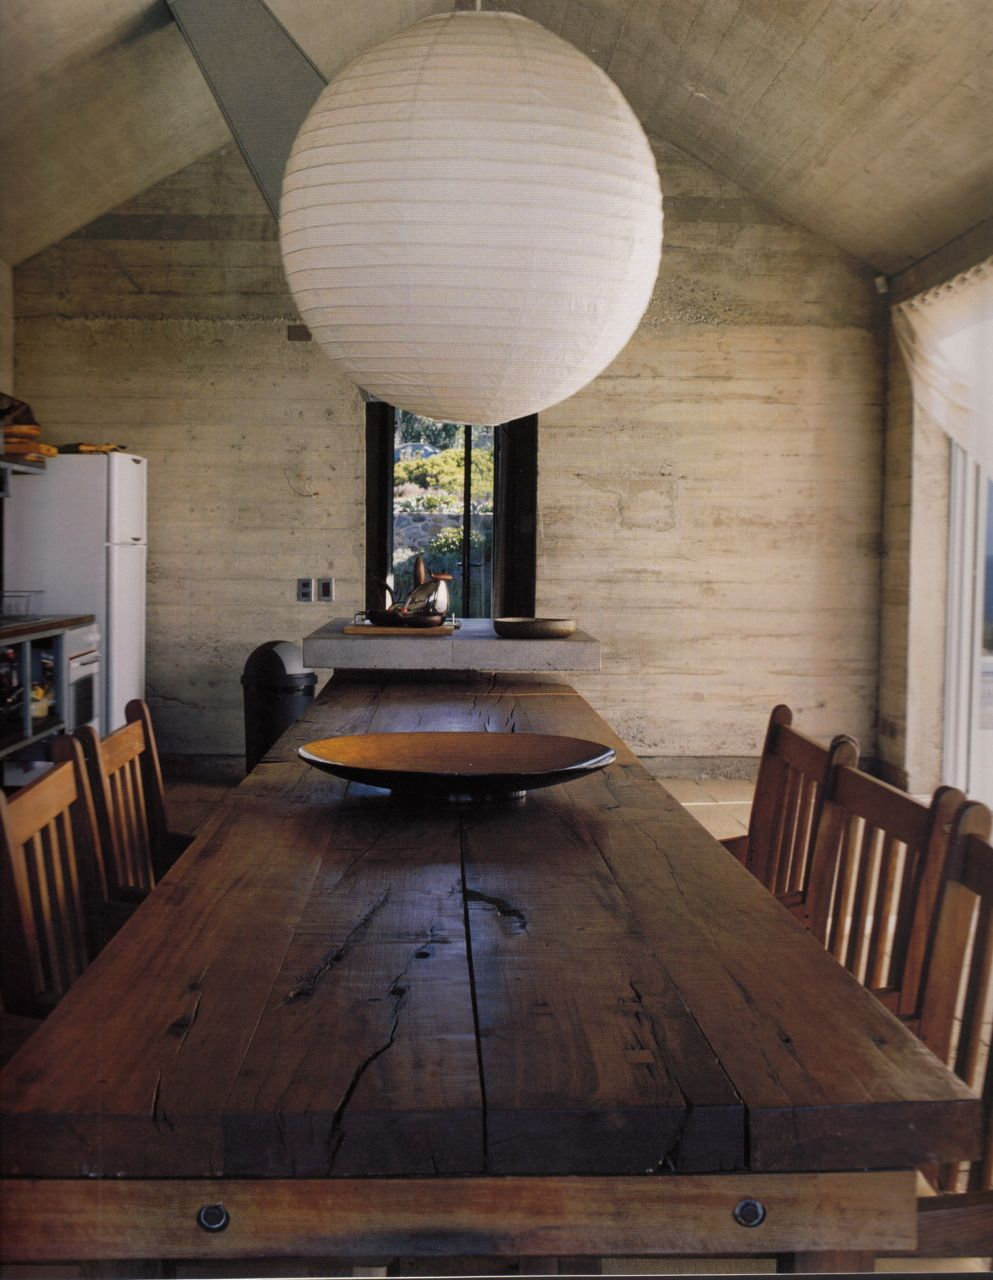 Long kitchen tables  Long farm table ud Cool CC  Rustic  Pinterest  Kitchens Rustic